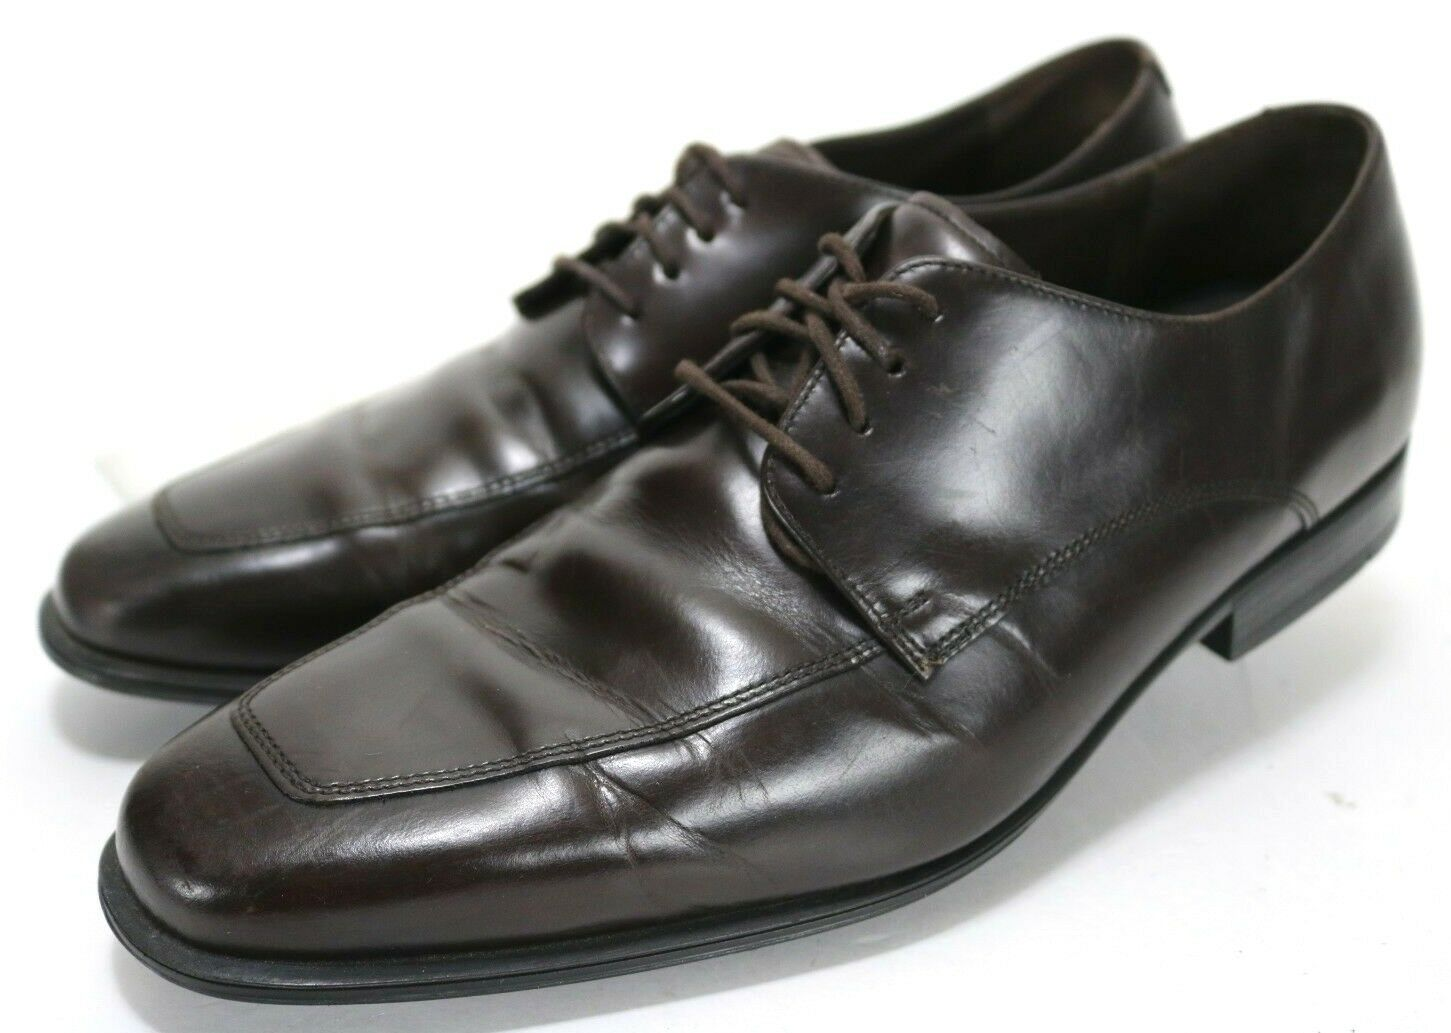 Cole Haan Nik Air  200 Men's Oxford Dress shoes Size 11 Leather Brown